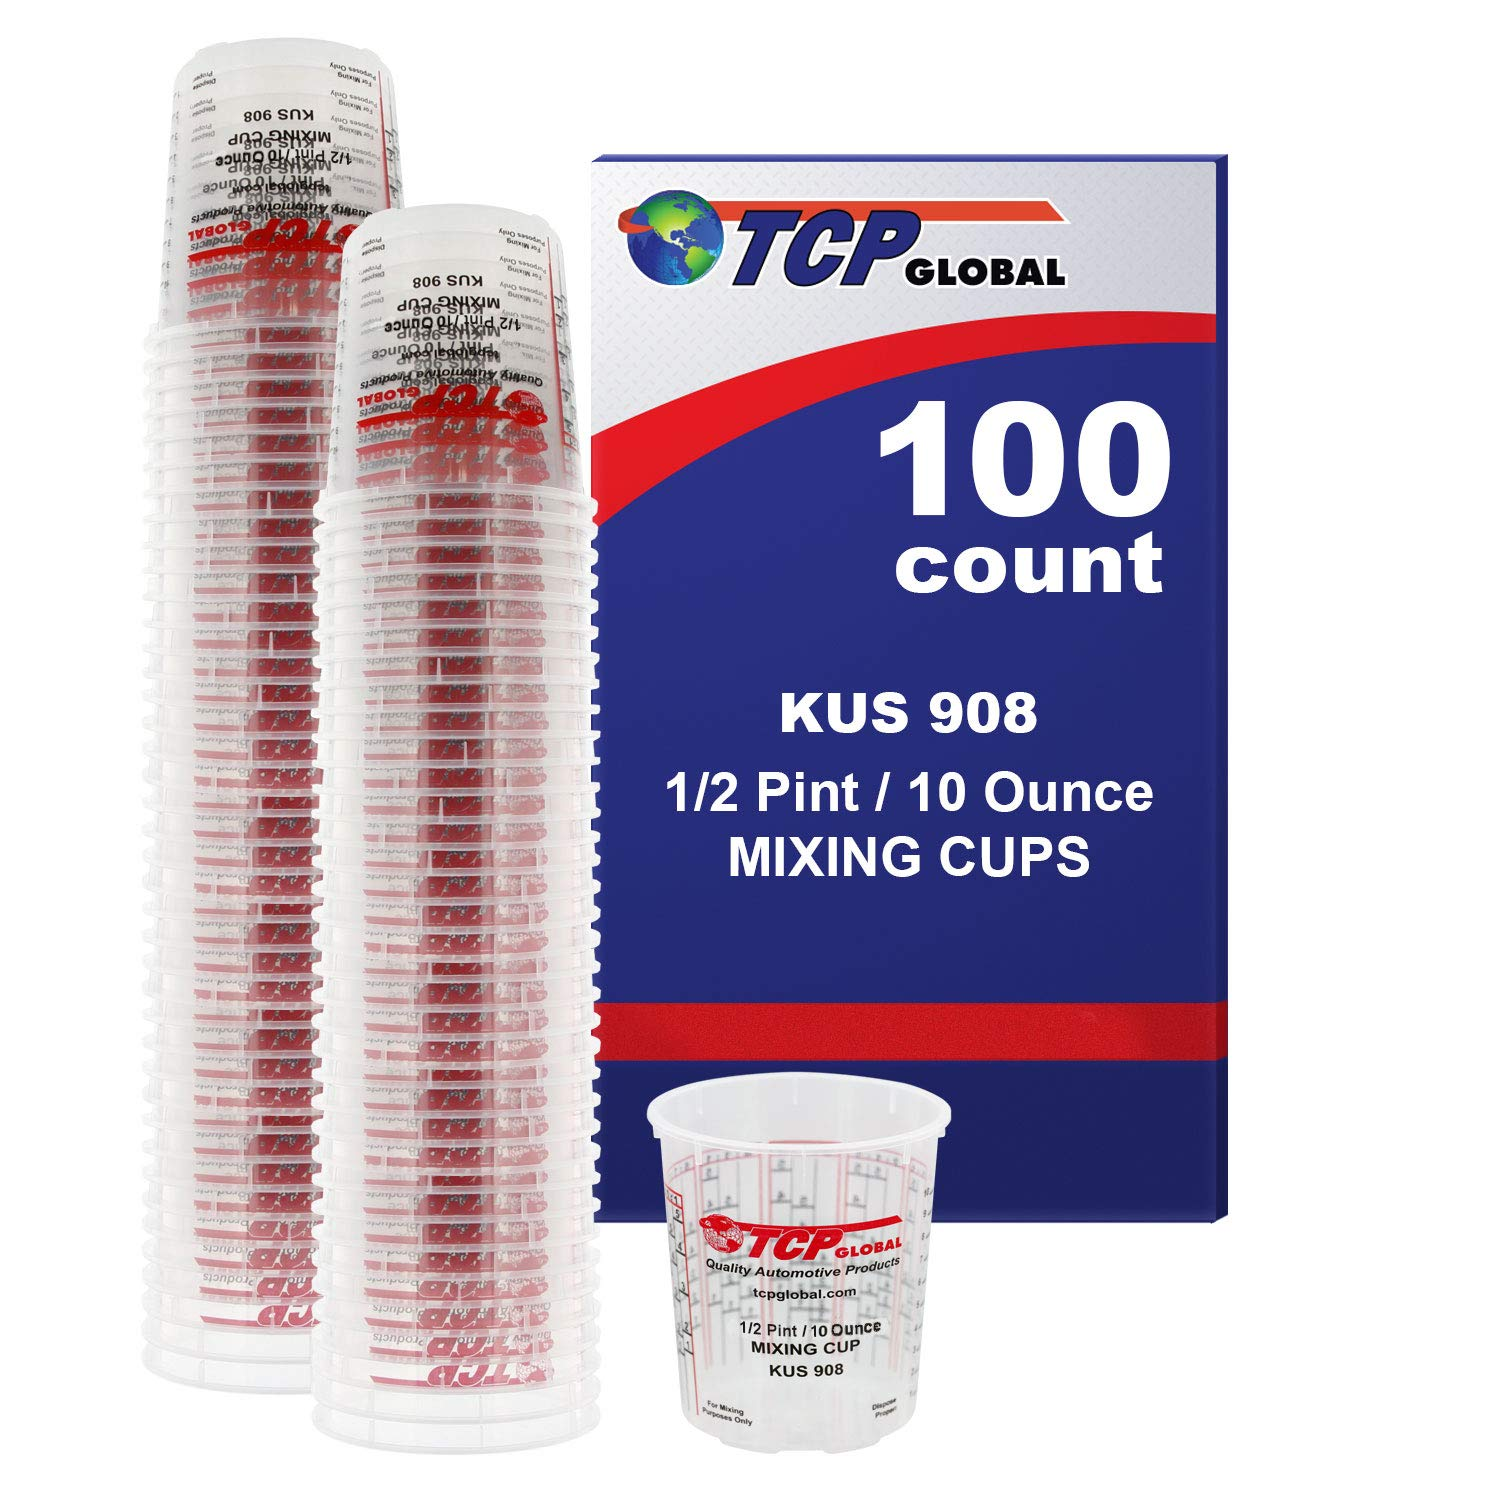 Custom Shop Brand (Full Case of 100 Each - 1/2 Pint (8oz) Paint Mixing Cups) - Cups Have Calibrated Mixing Ratios on Side of Cup BOX of 100 Cups by Custom Shop